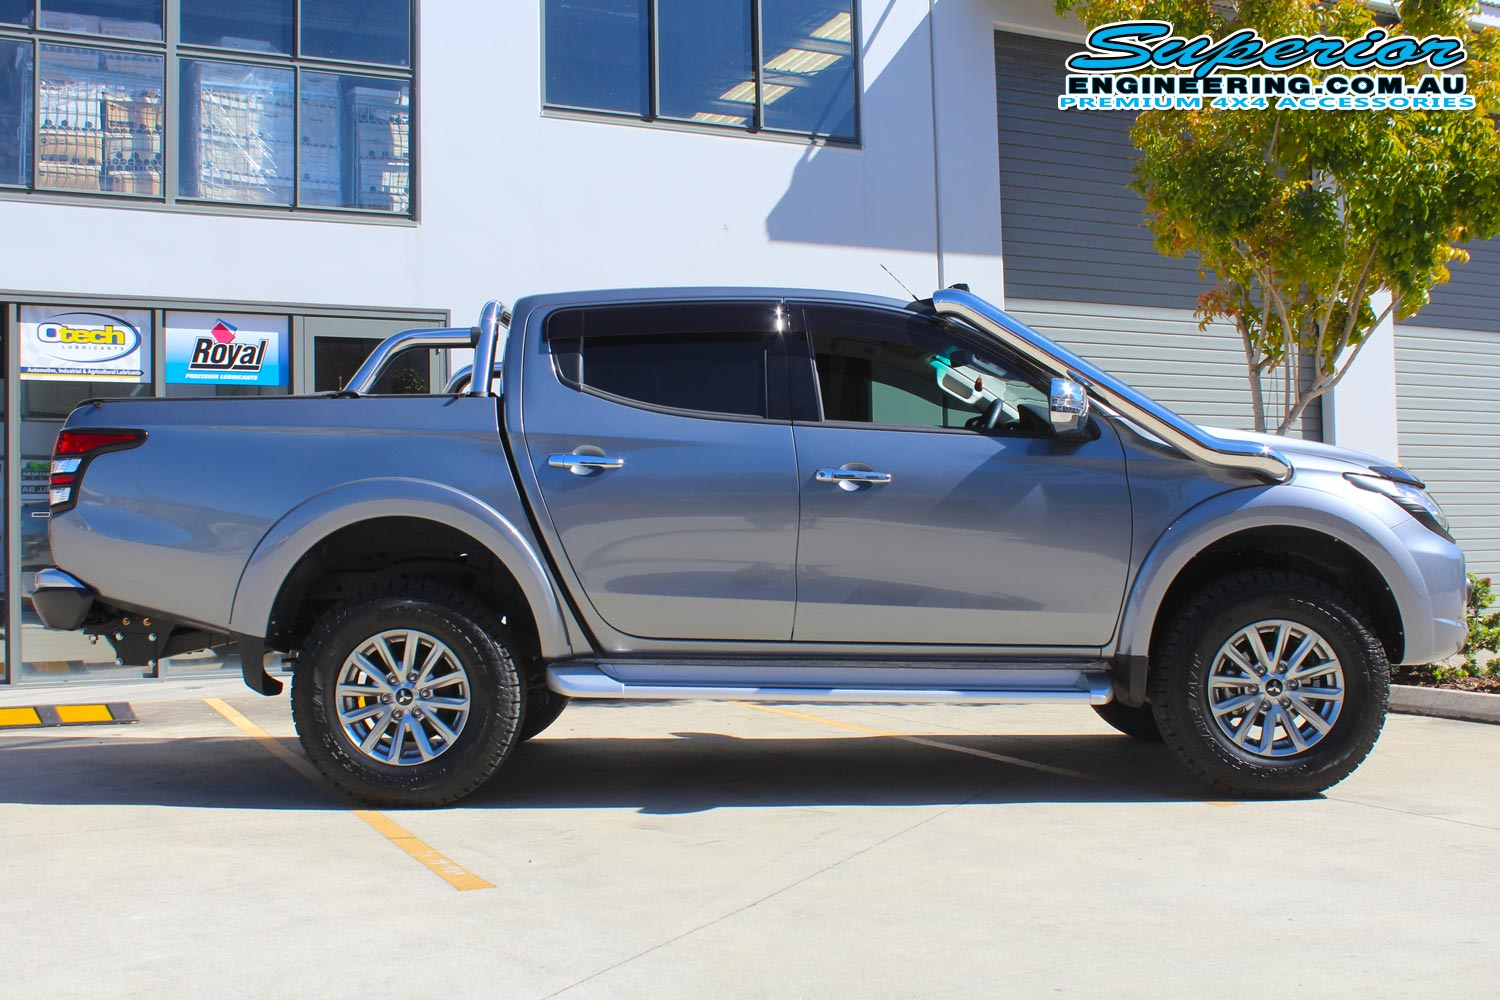 Right side view of a grey MQ Mitsubishi Triton four wheel drive after being fitted with a 40mm Bilstein lift kit at the Superior Engineering 4x4 retail showroom